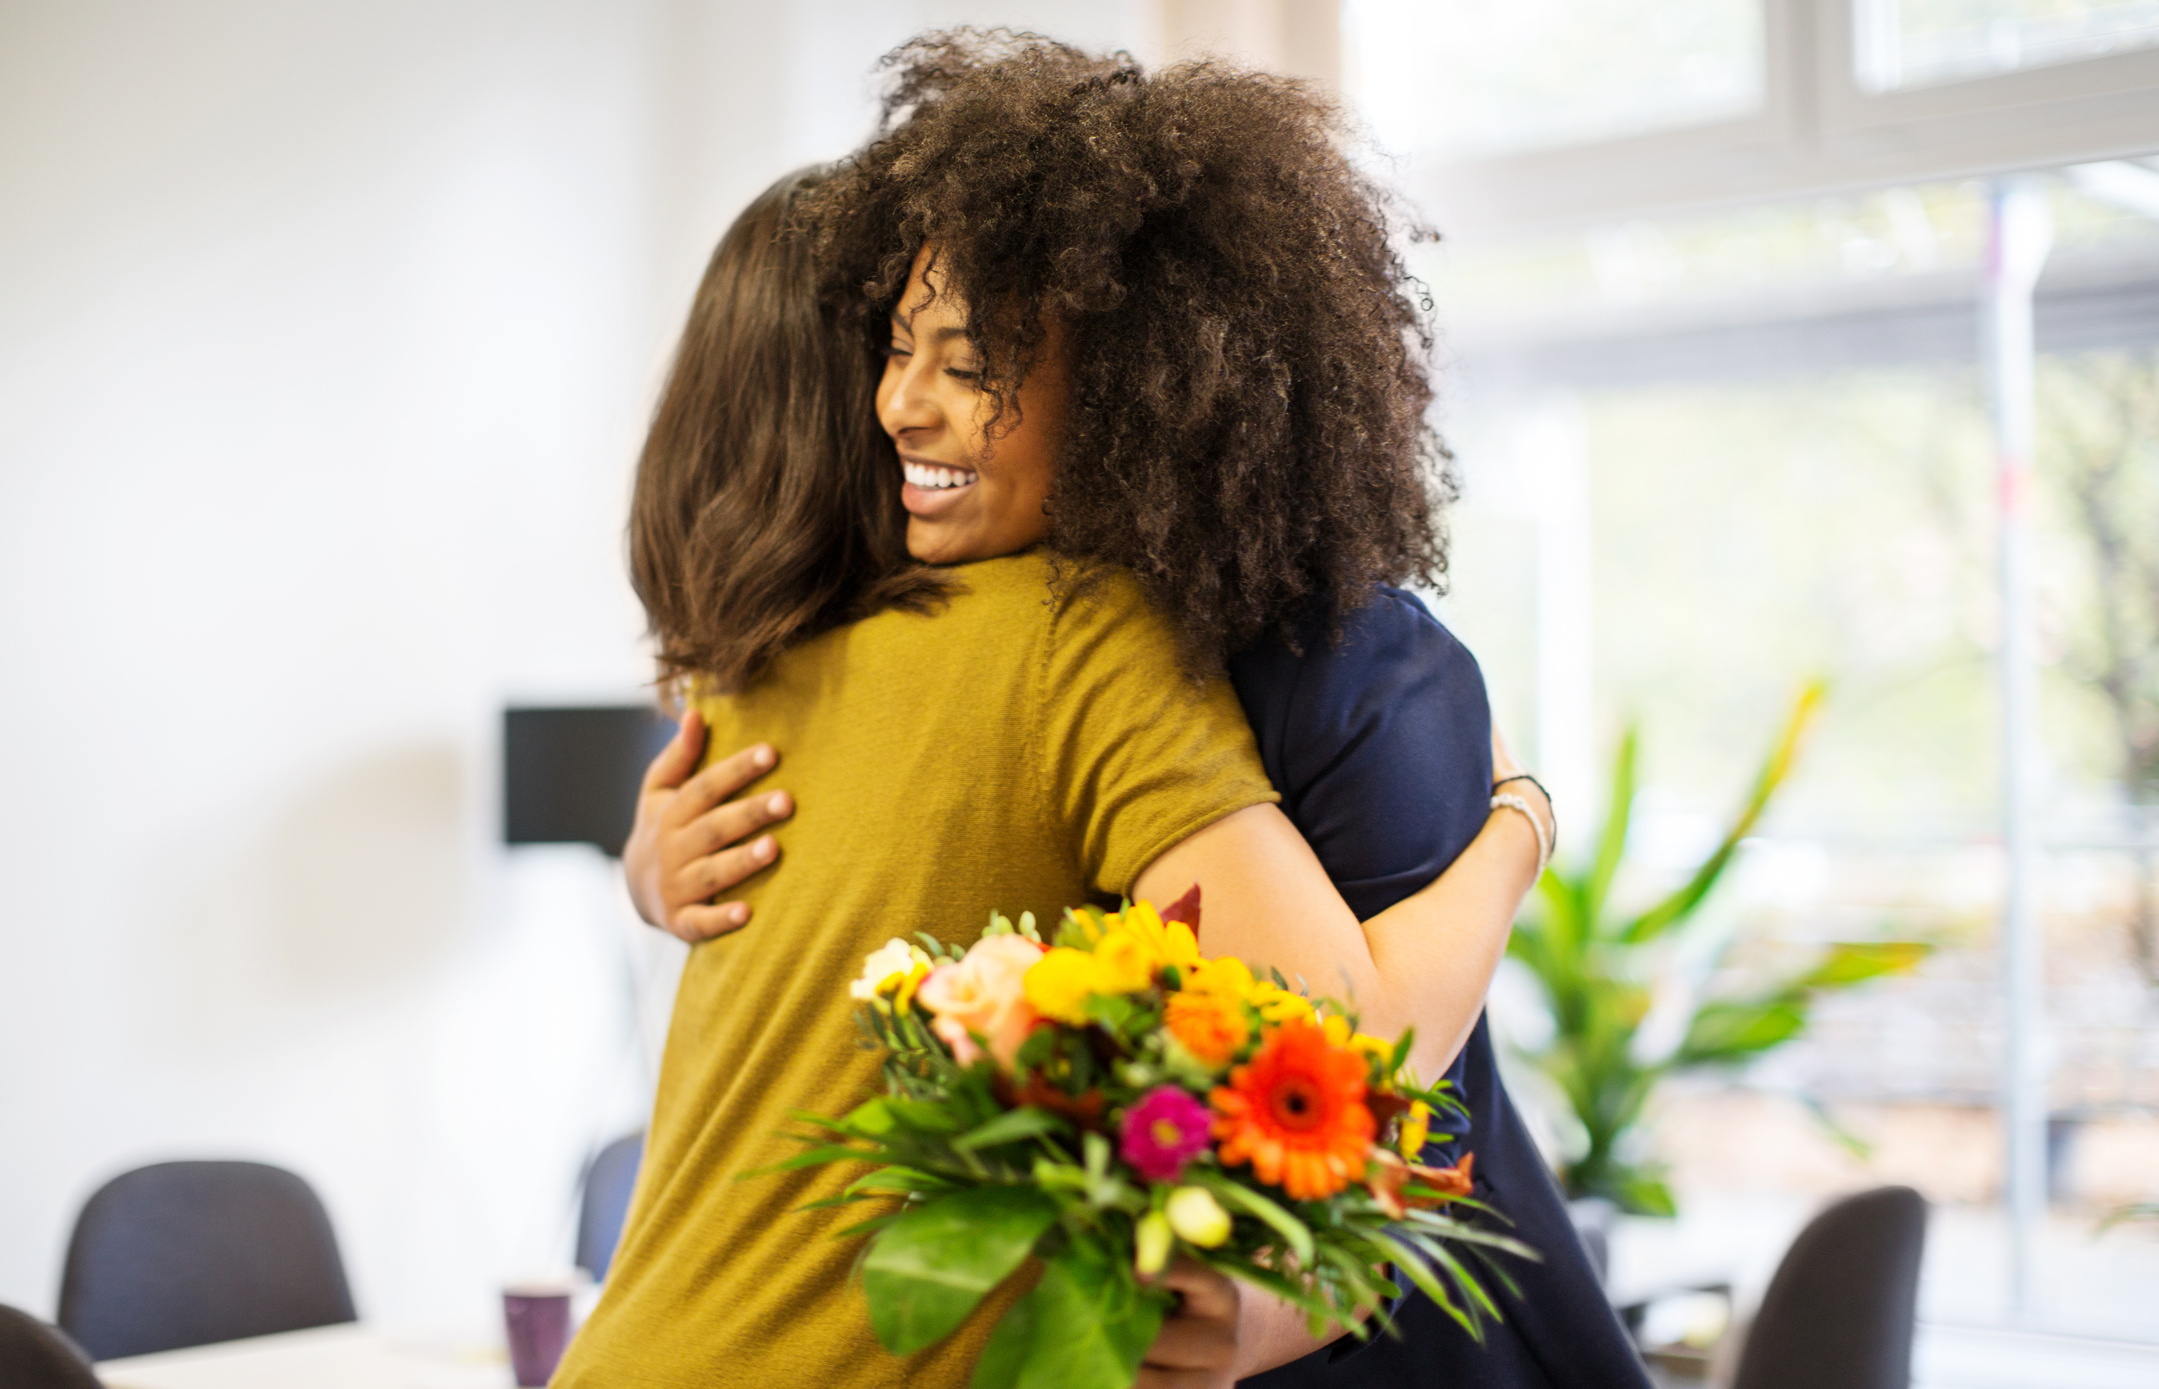 Show gratitude in the workplace to improve your well-being and relationships.